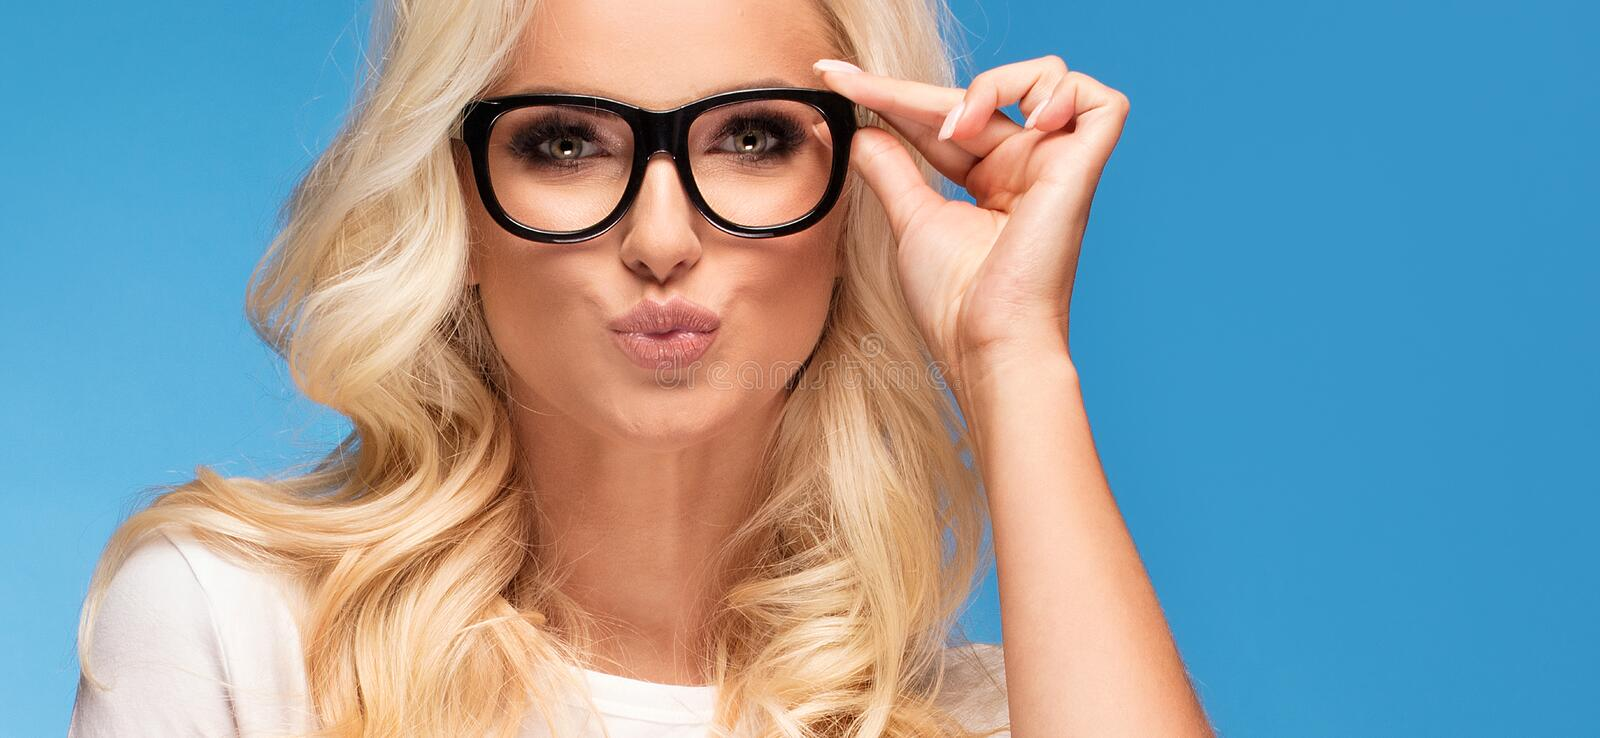 Happy woman with eyeglasses royalty free stock image